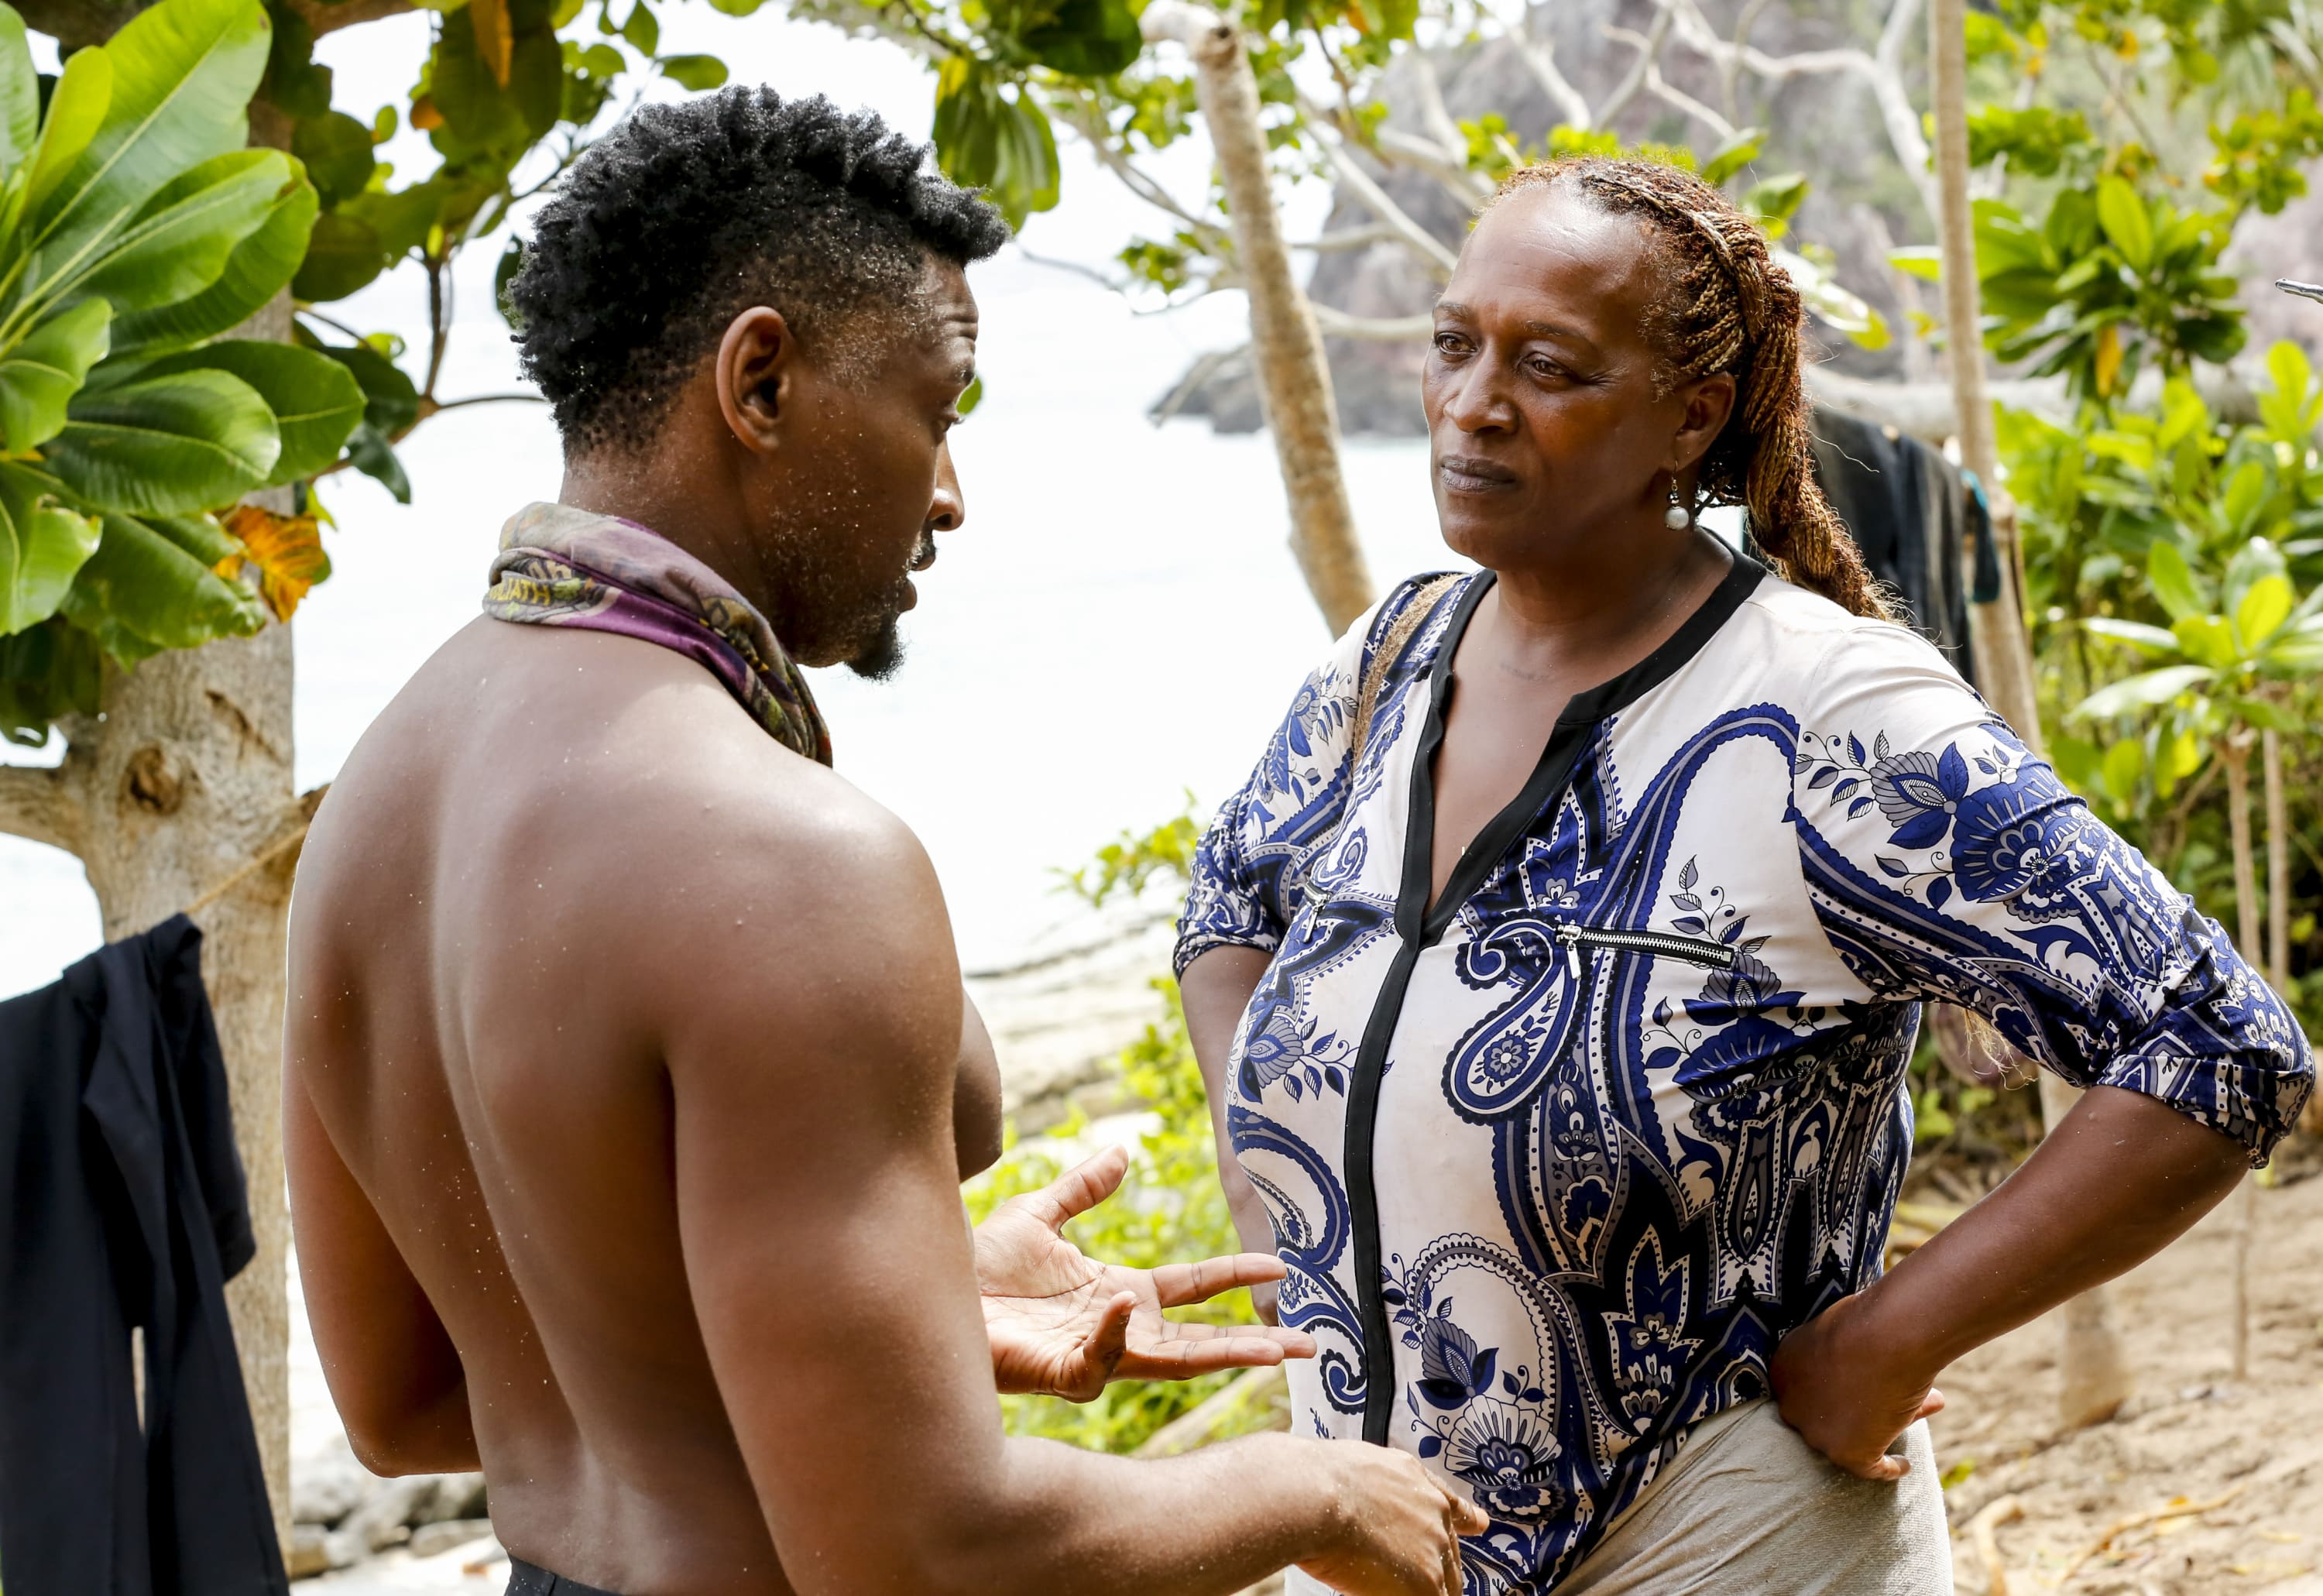 Jeremy Crawford talks with Natalie Cole on Survivor: David vs. Goliath